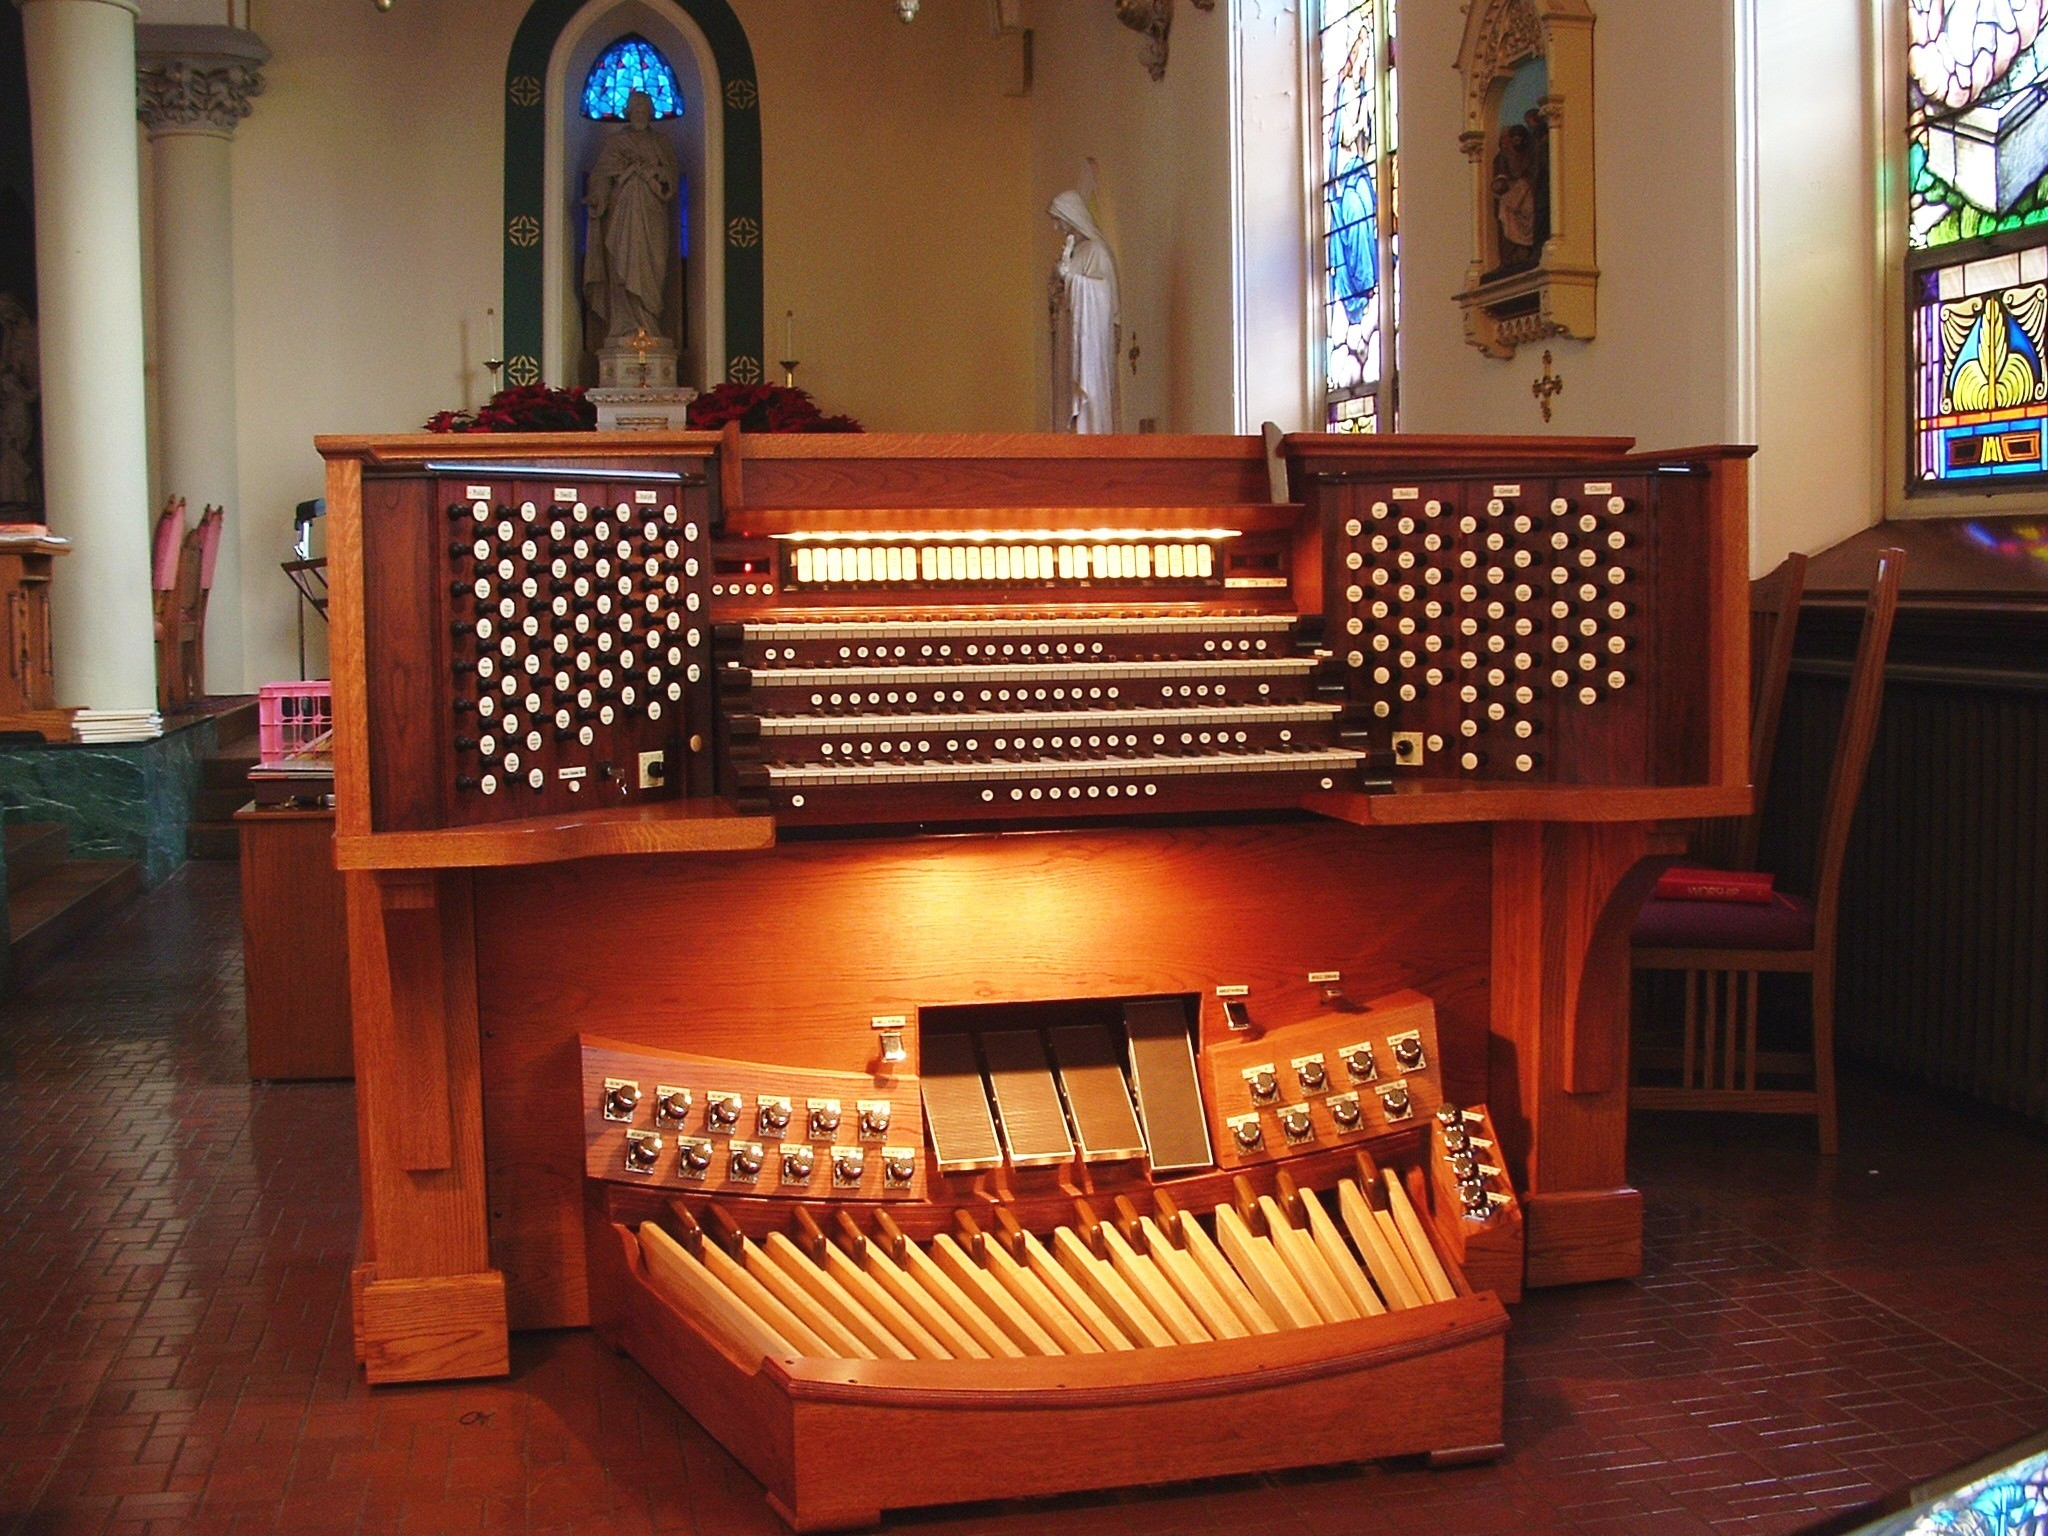 2048x1536 Robert Sullivan is organist and director of music/liturgy at the Basilica  of Saint John the Baptist - Canton, Ohio (2004 Kegg Organ 4/79) and  executive ...